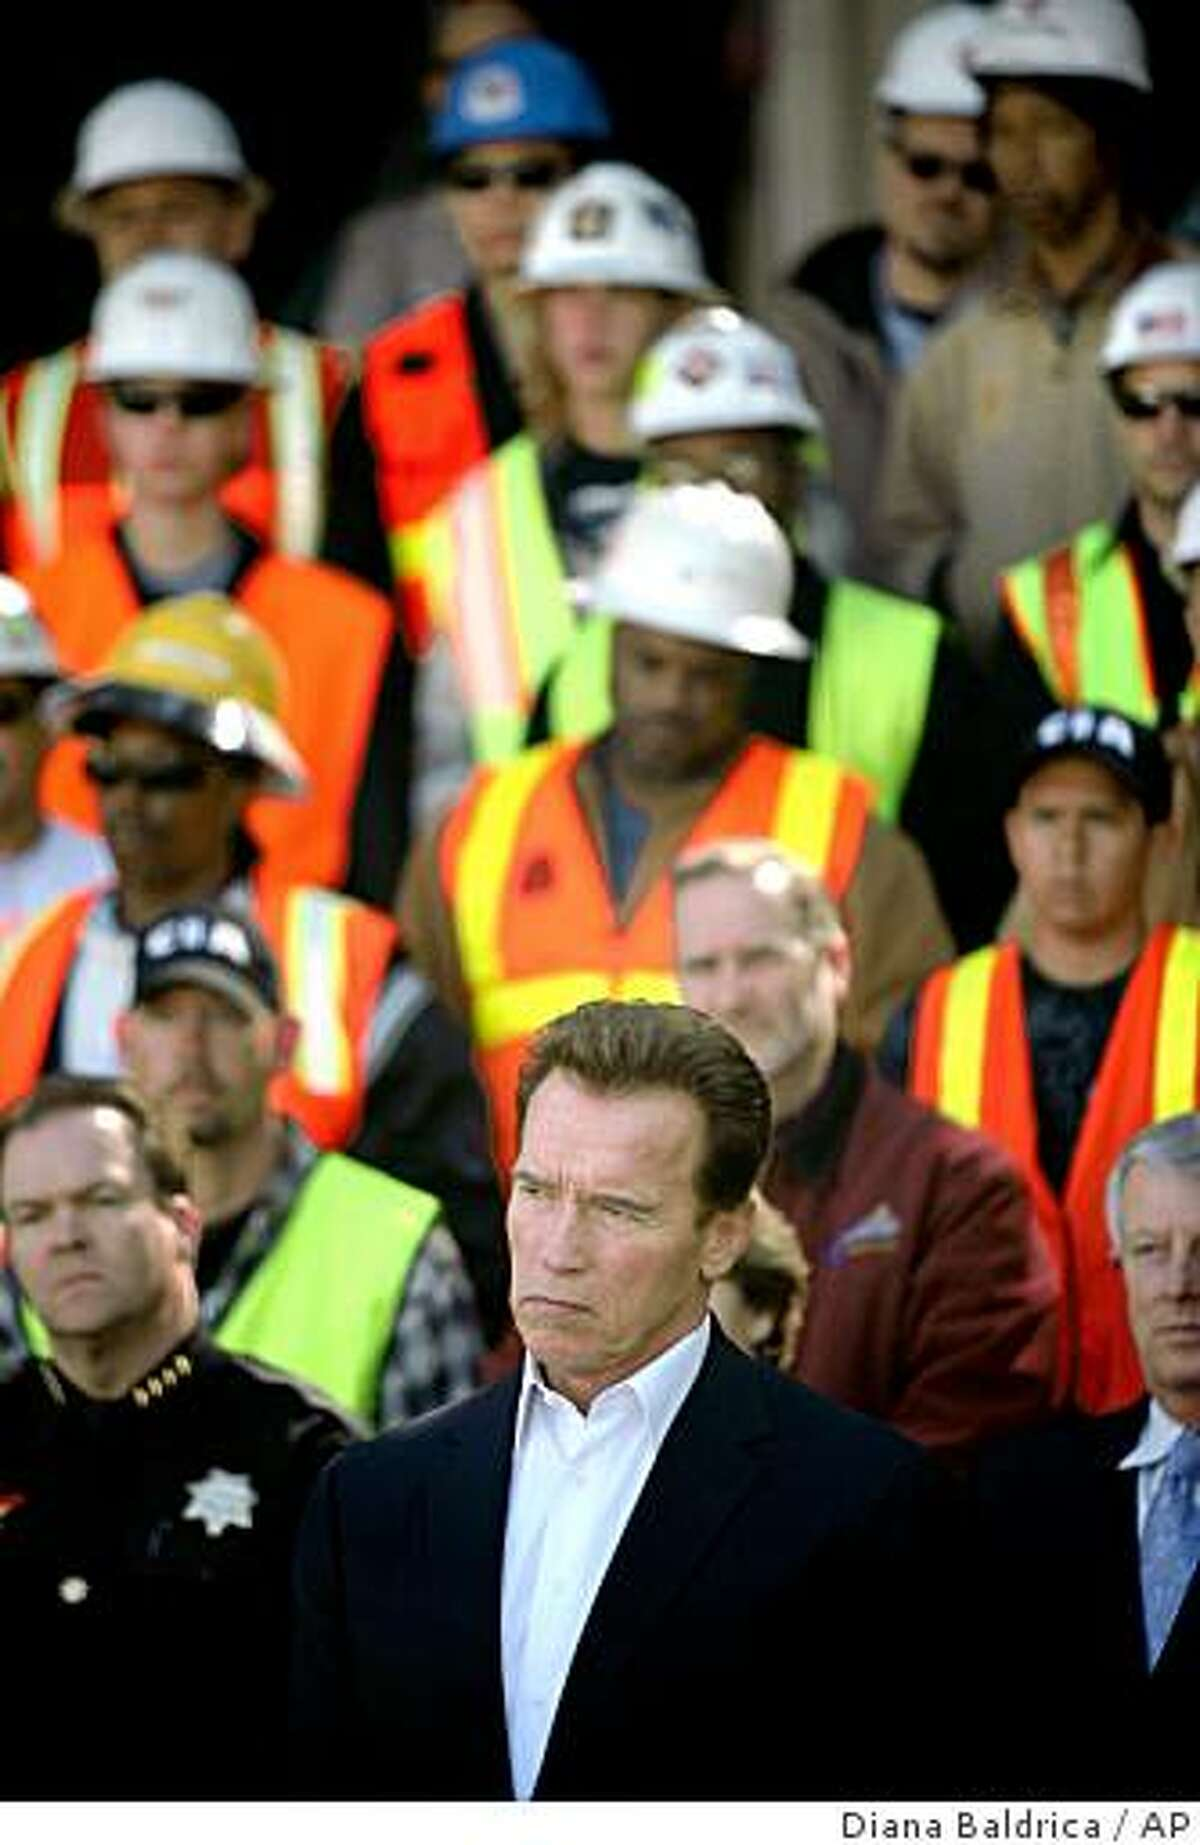 California Gov. Arnold Schwarzenegger is seen at a news conference on Friday, Feb. 27, 2009 in Fresno, Calif. Schwarzenegger was promoting six budget-related measures that will appear on the May 19 special election ballot. (AP Photo/The Fresno Bee, Diana Baldrica)